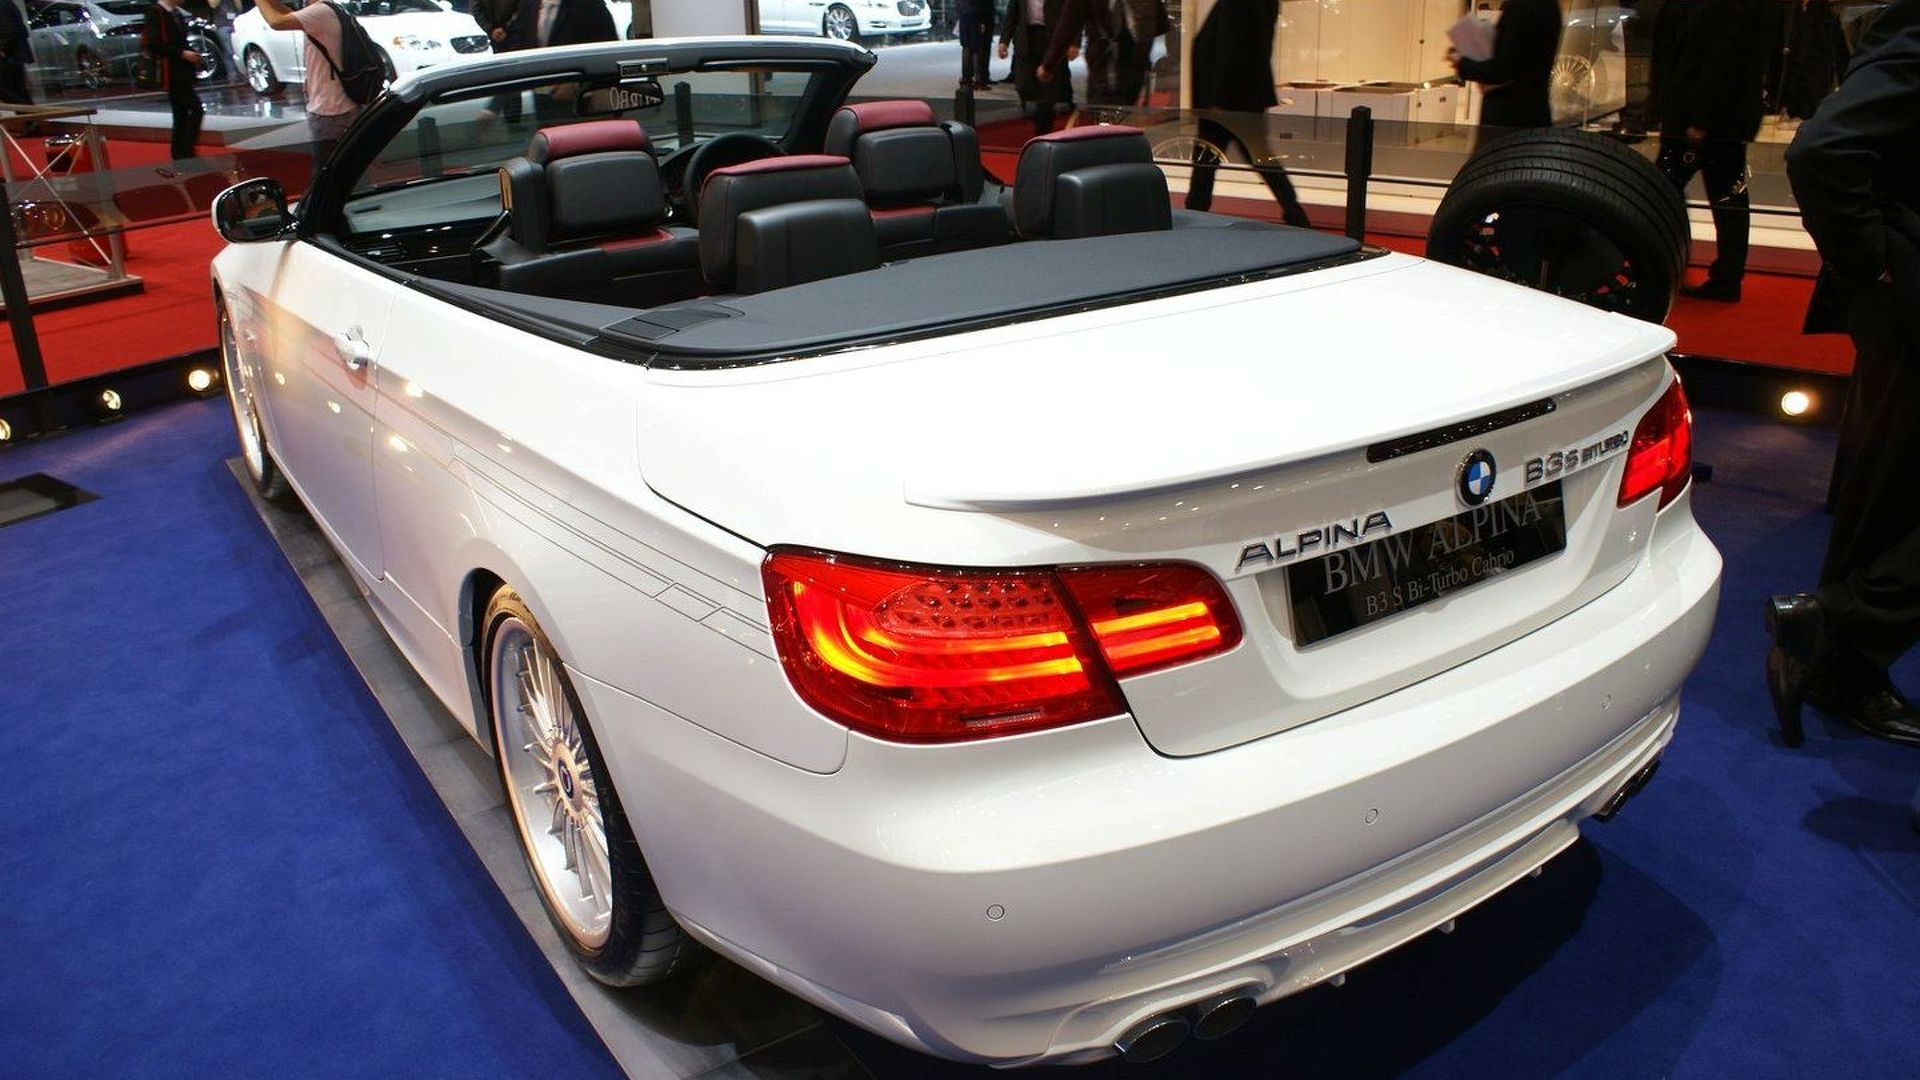 bmw alpina b3 s biturbo revealed in geneva with 400 ps. Black Bedroom Furniture Sets. Home Design Ideas